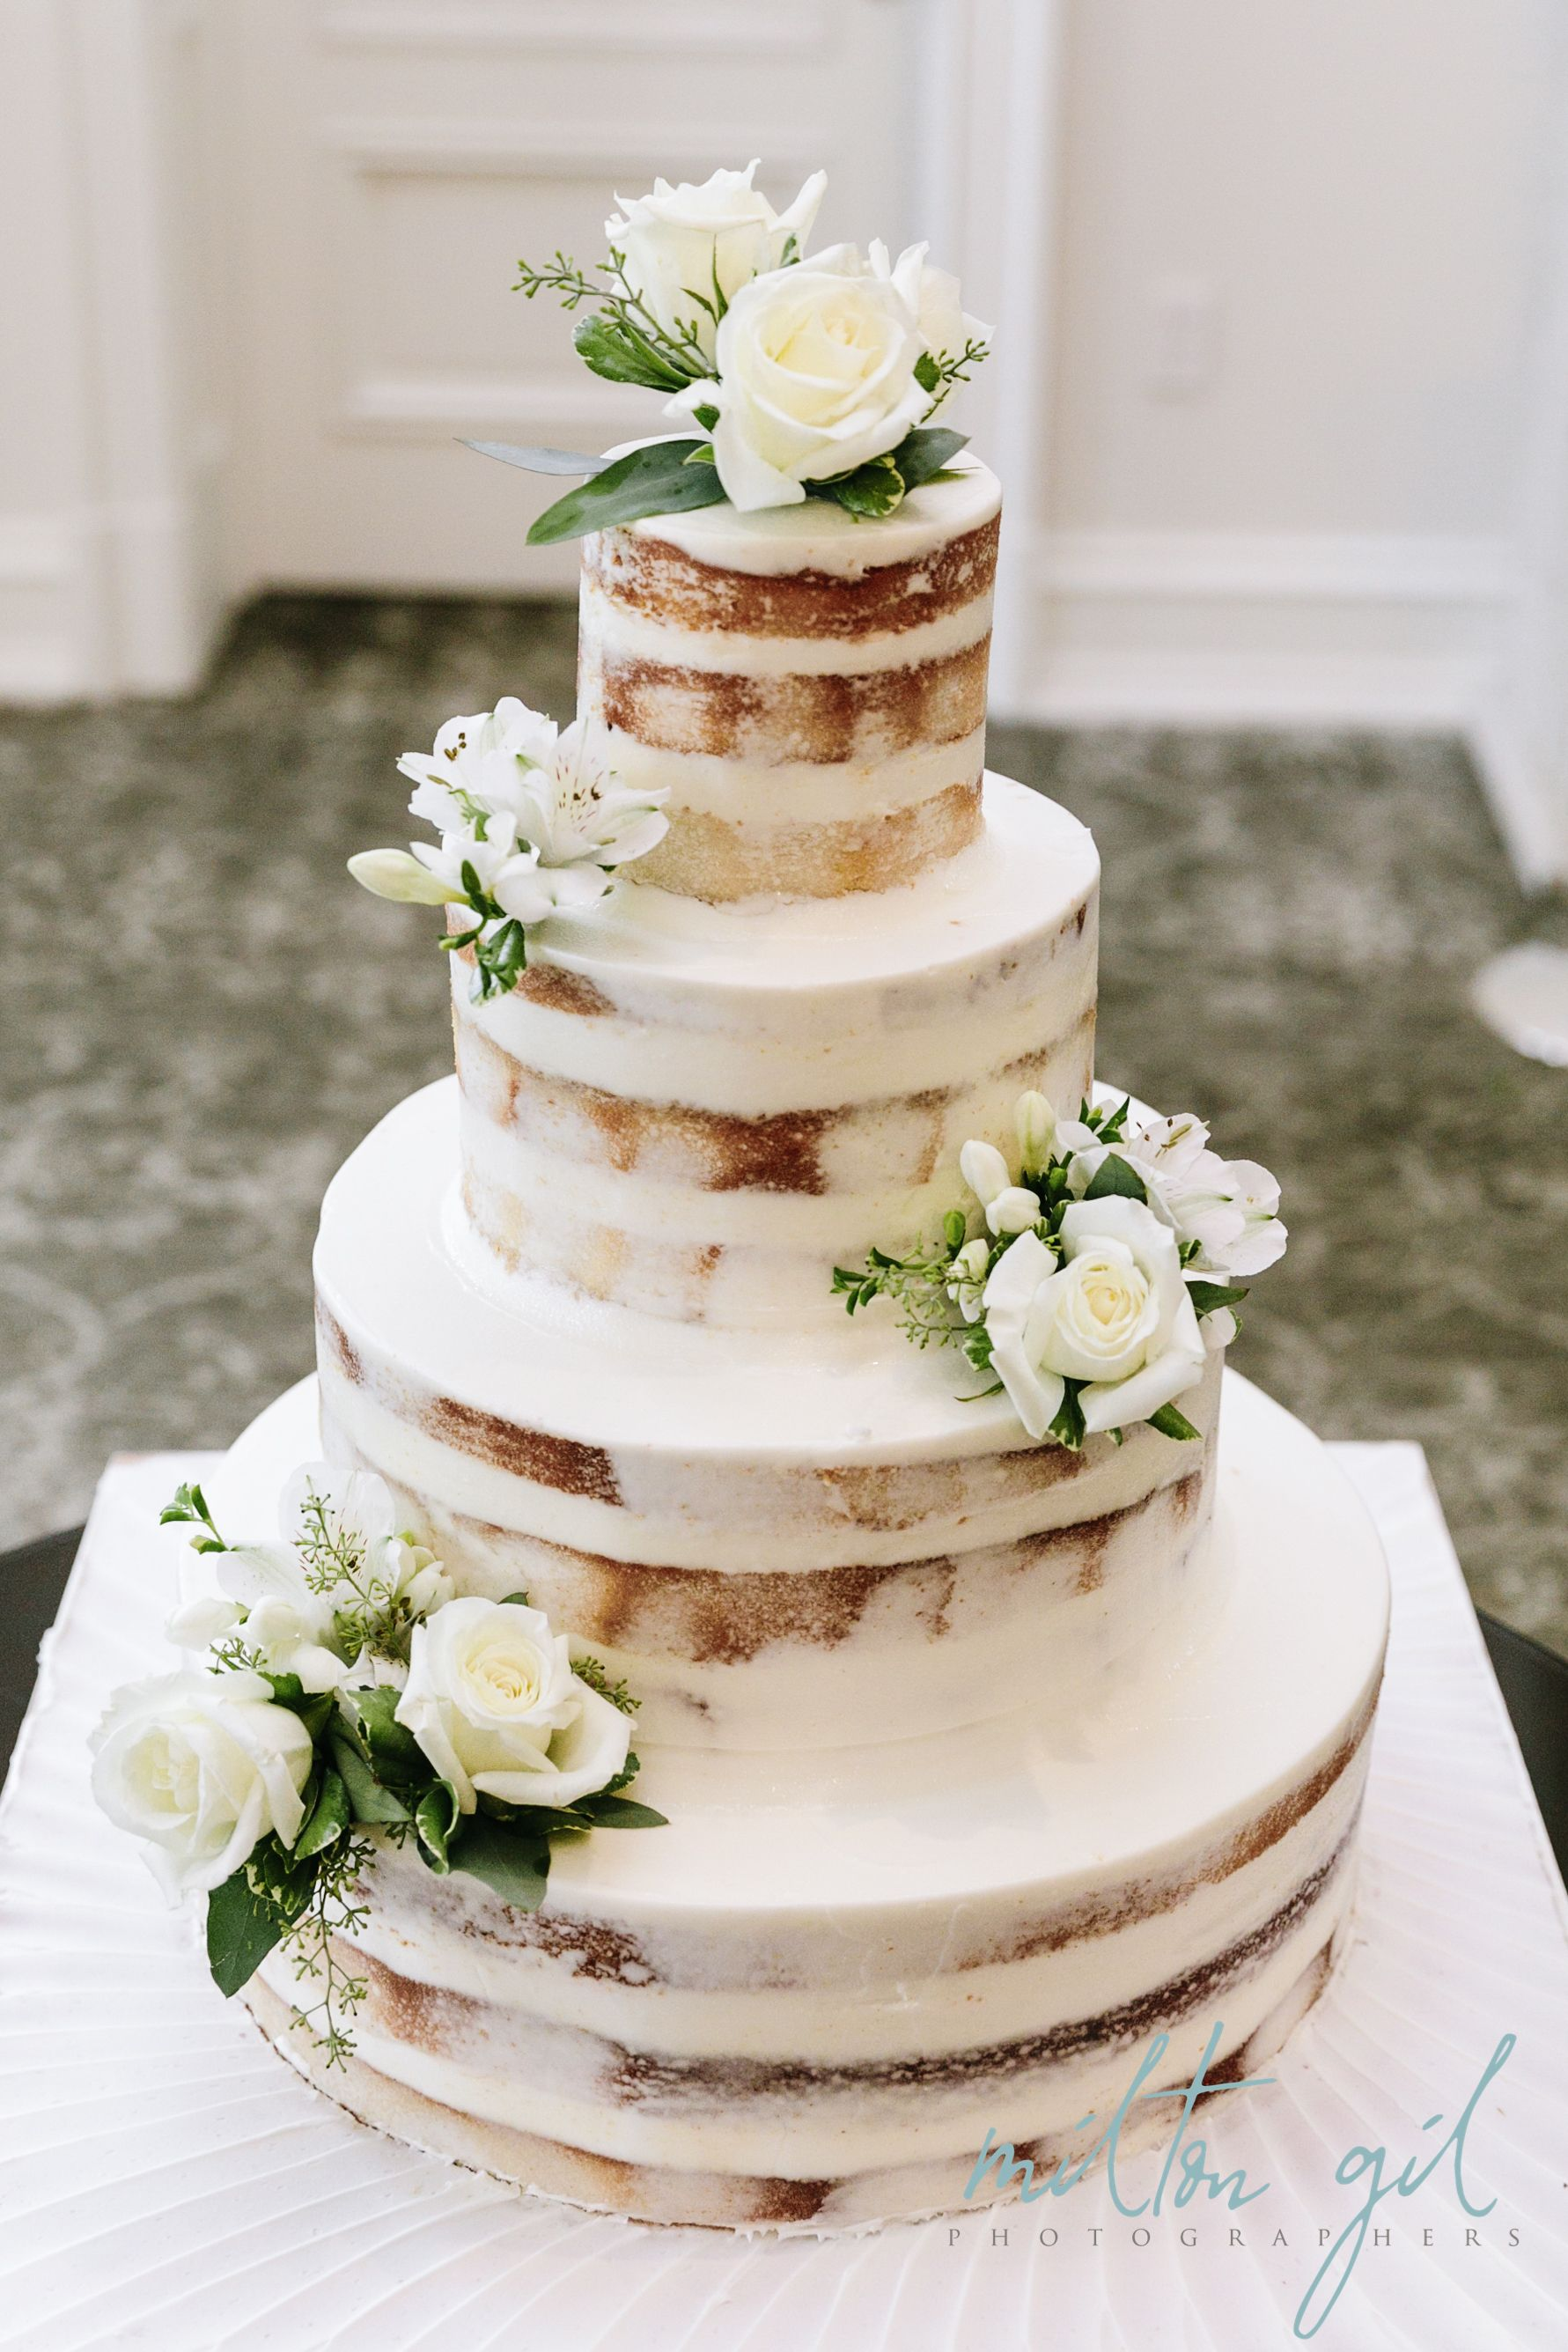 Beautiful Floral Wedding Cake Photo By Miltongilphotographers Wedding Cake Photos Floral Wedding Cake Wedding Desserts